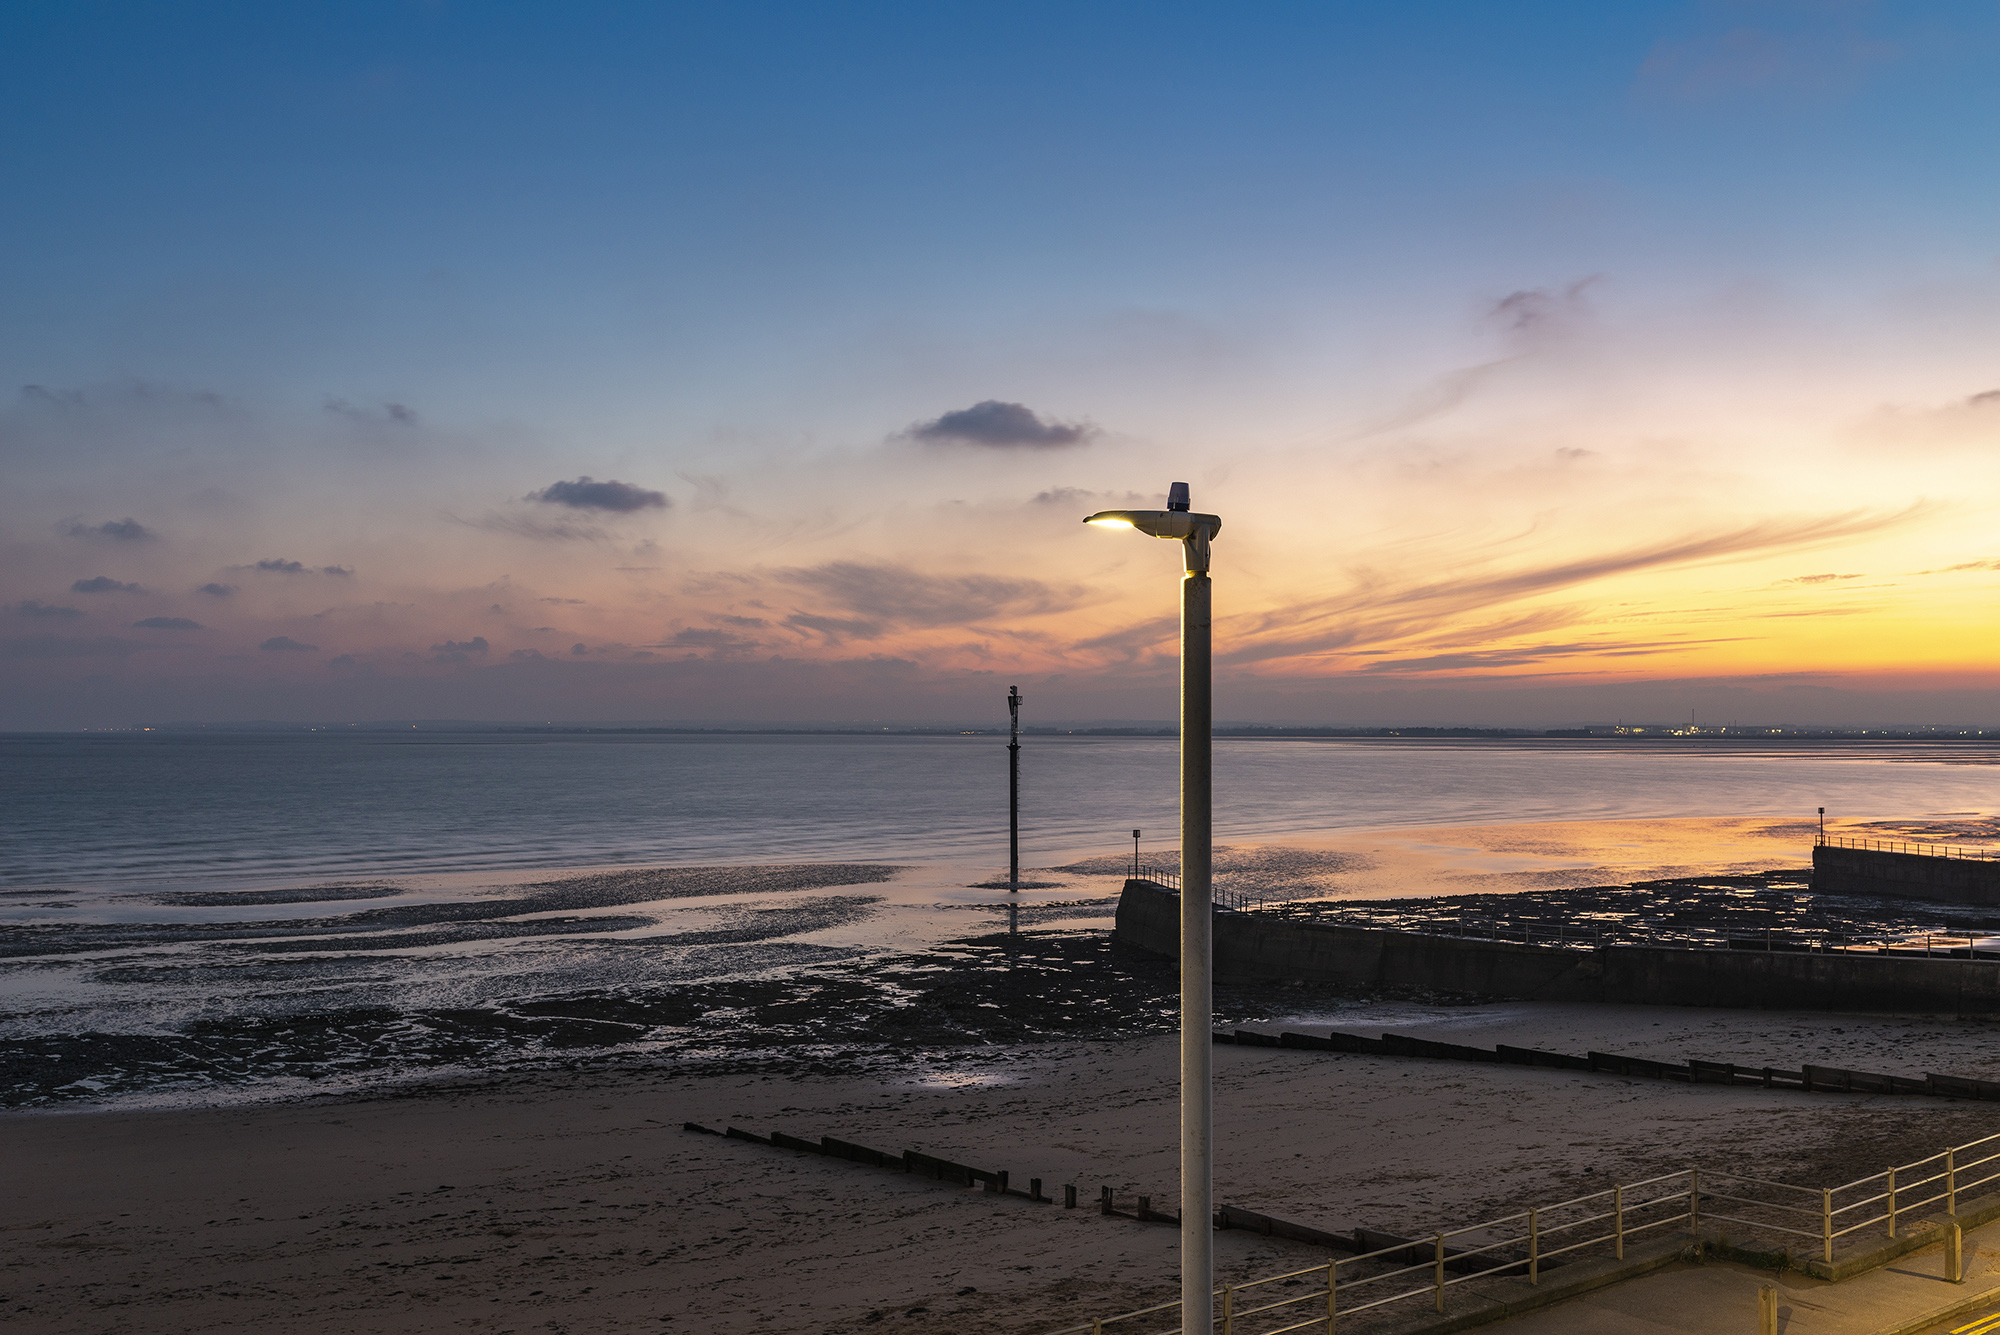 Ramsgate-Lampost_and_Marker_Western_Undercliff_Beach_at_Sunset-1049